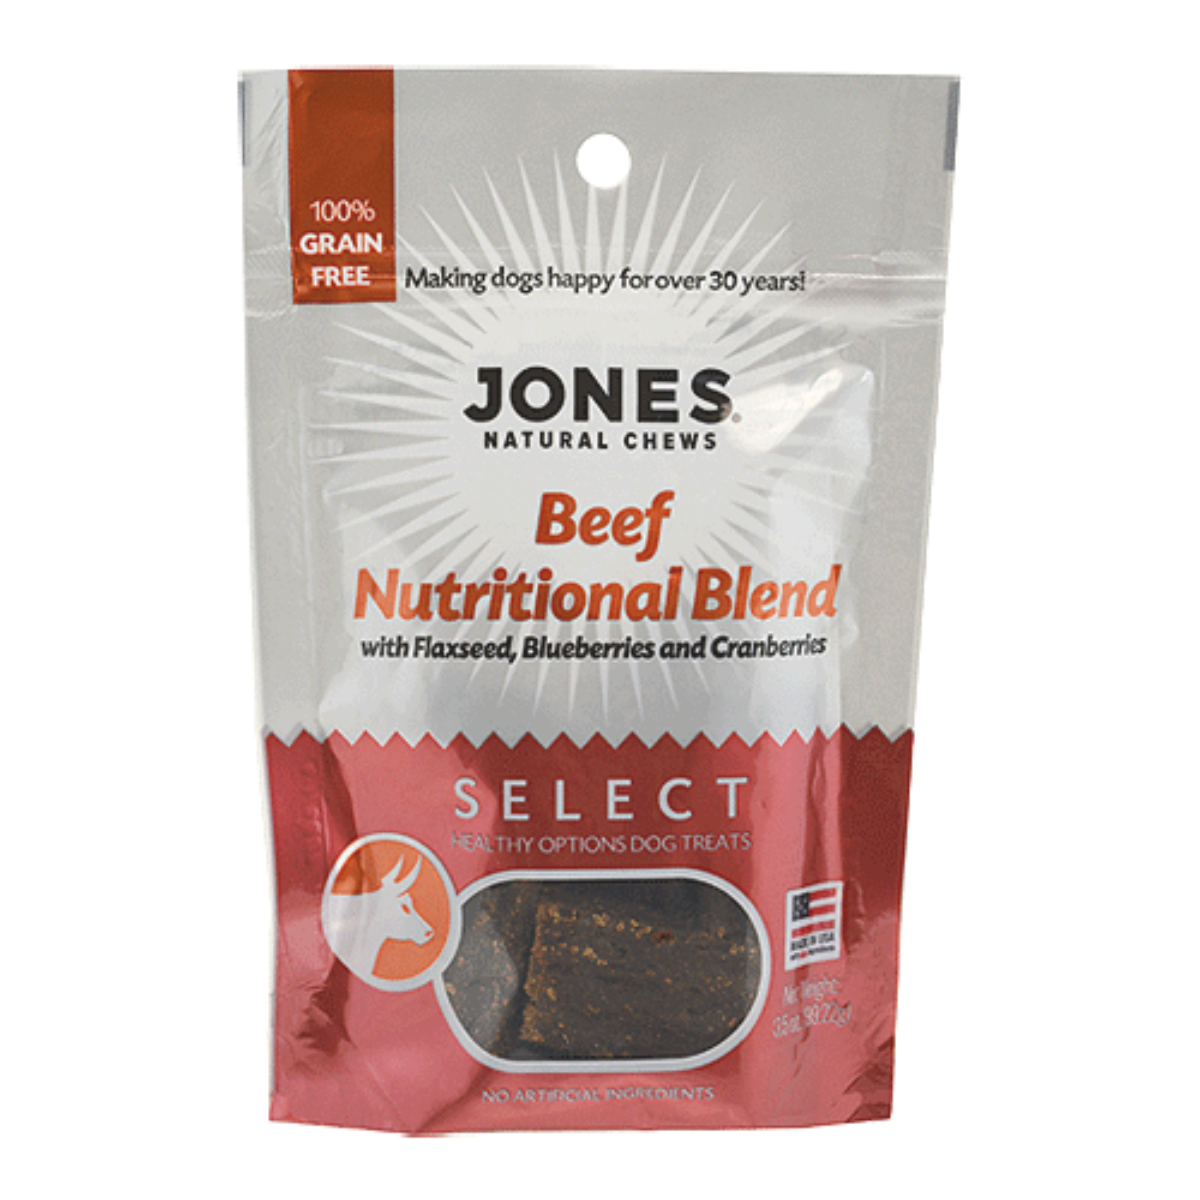 Jones Select Dog Treat - Beef Nutritional Blend